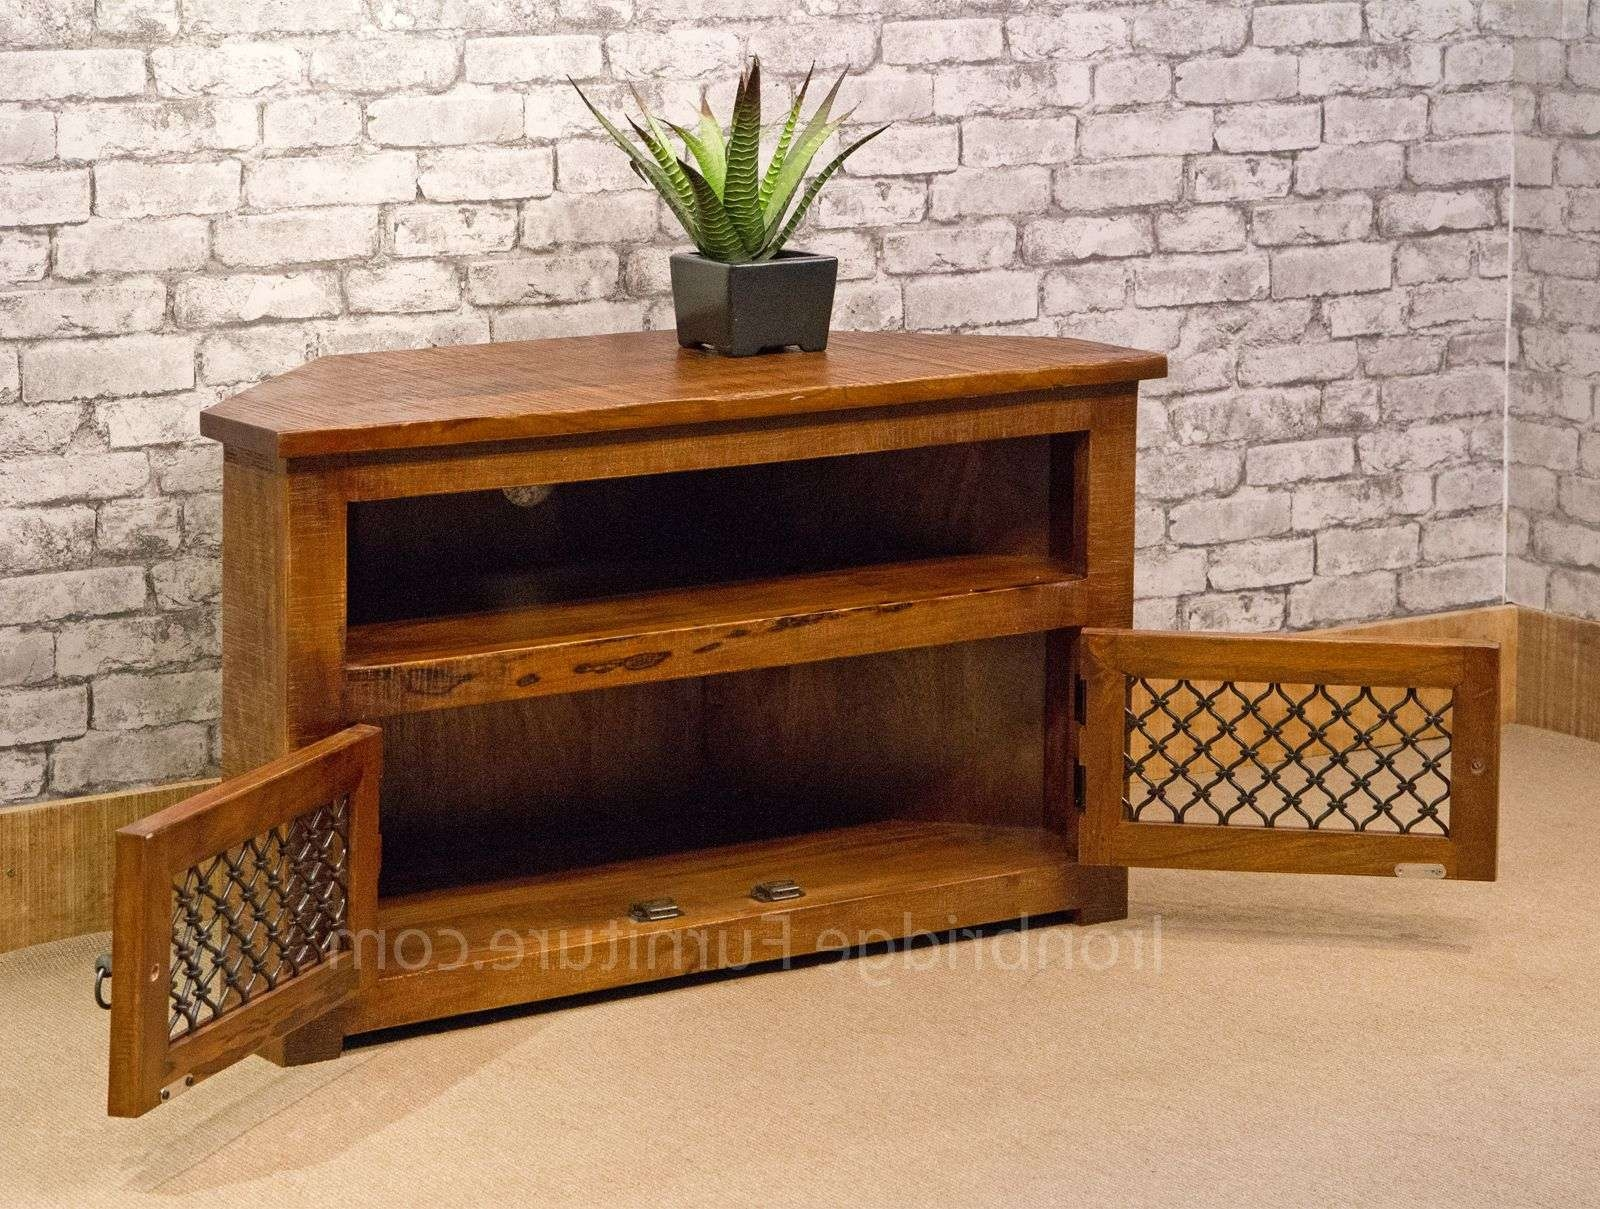 13 Jali Rustic Farm Corner Tv Stand 100cm Within Tv Stands 100cm (View 3 of 15)